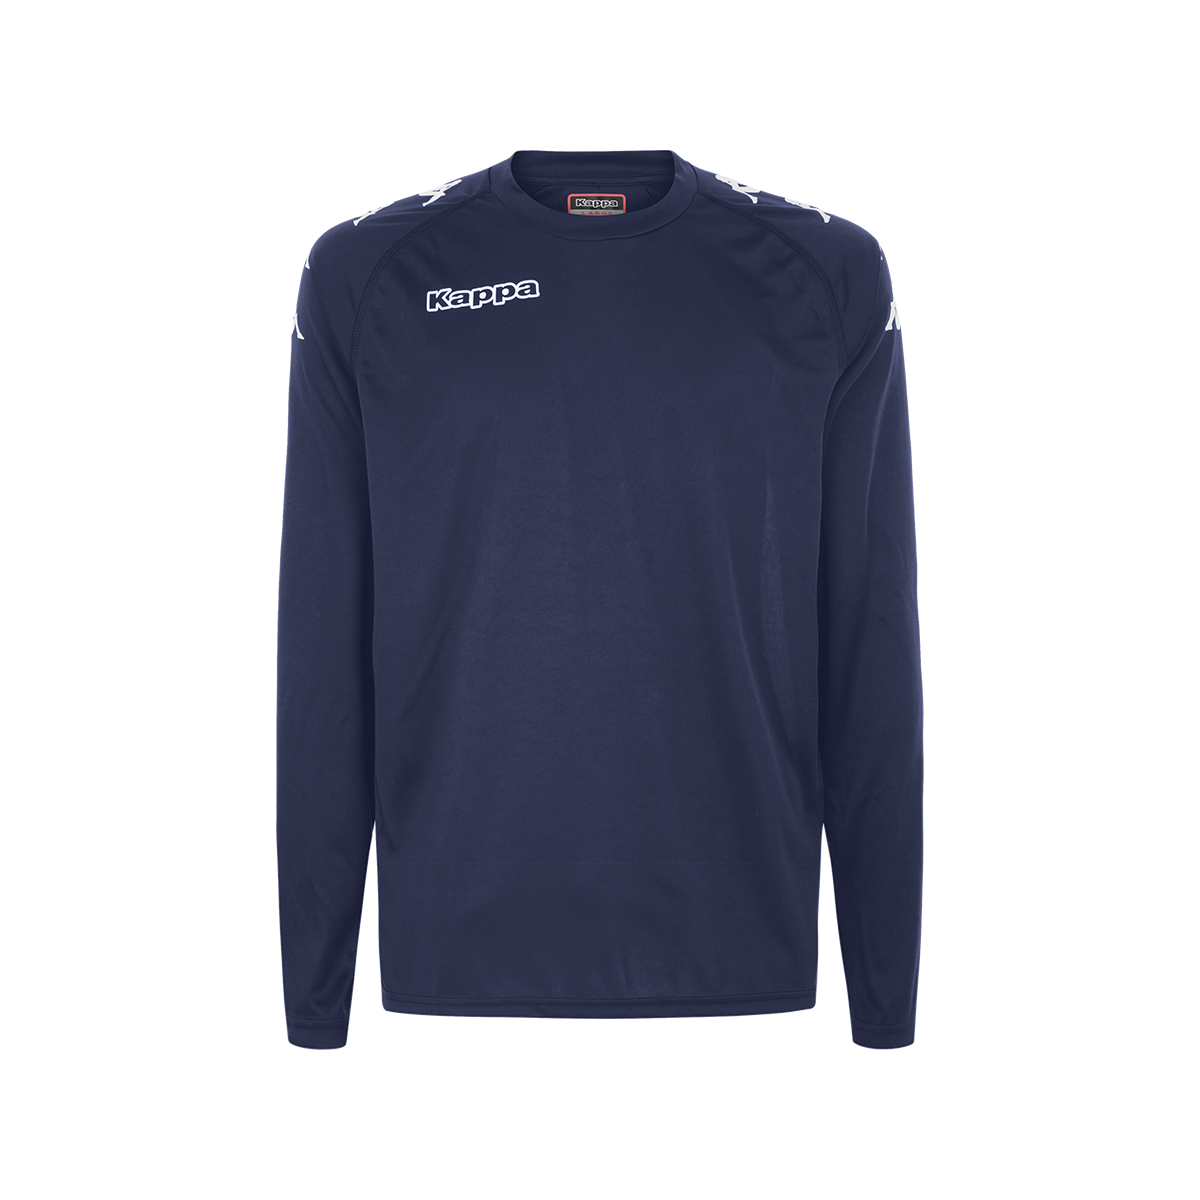 Kappa Cinanda Match Shirt LS - Navy